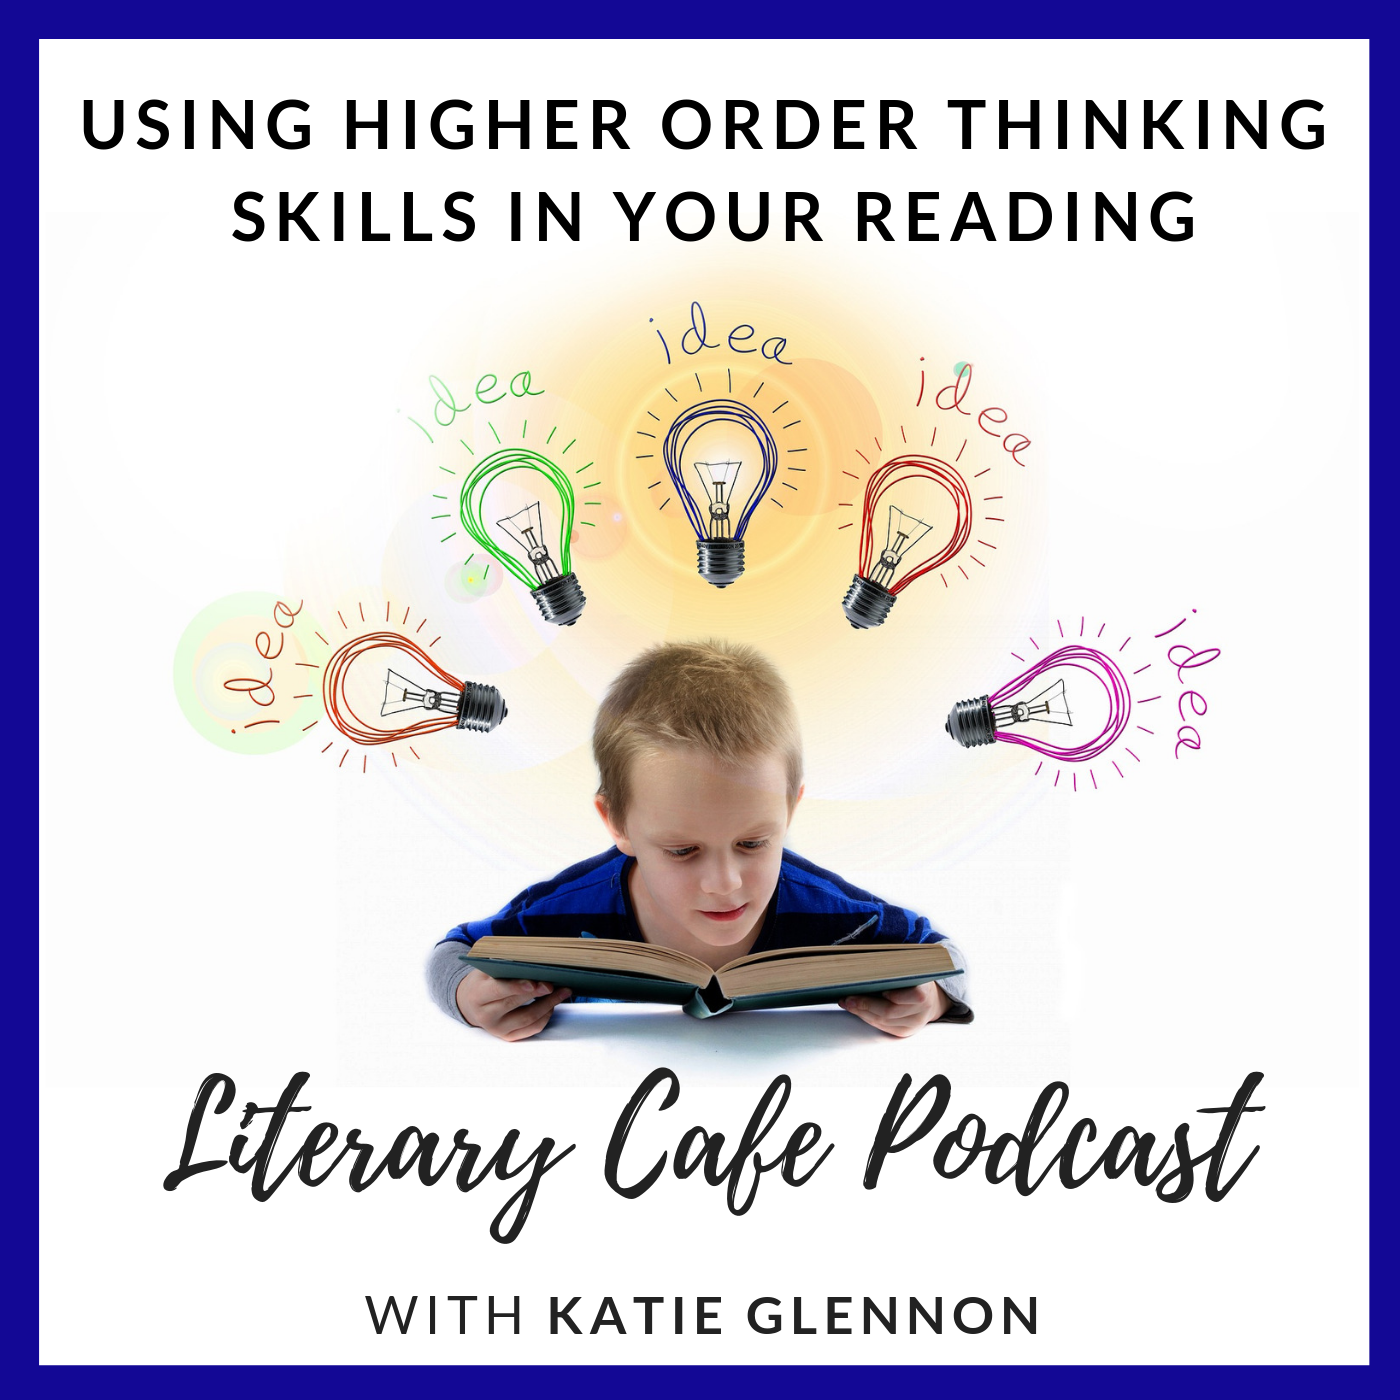 Using Higher Order Thinking Skills in Your Reading with Literary Cafe Podcast #homeschool #homeschooling #literarycafepodcast #reading #higherorderthinkingskills #criticalthinkingskills #languagearts